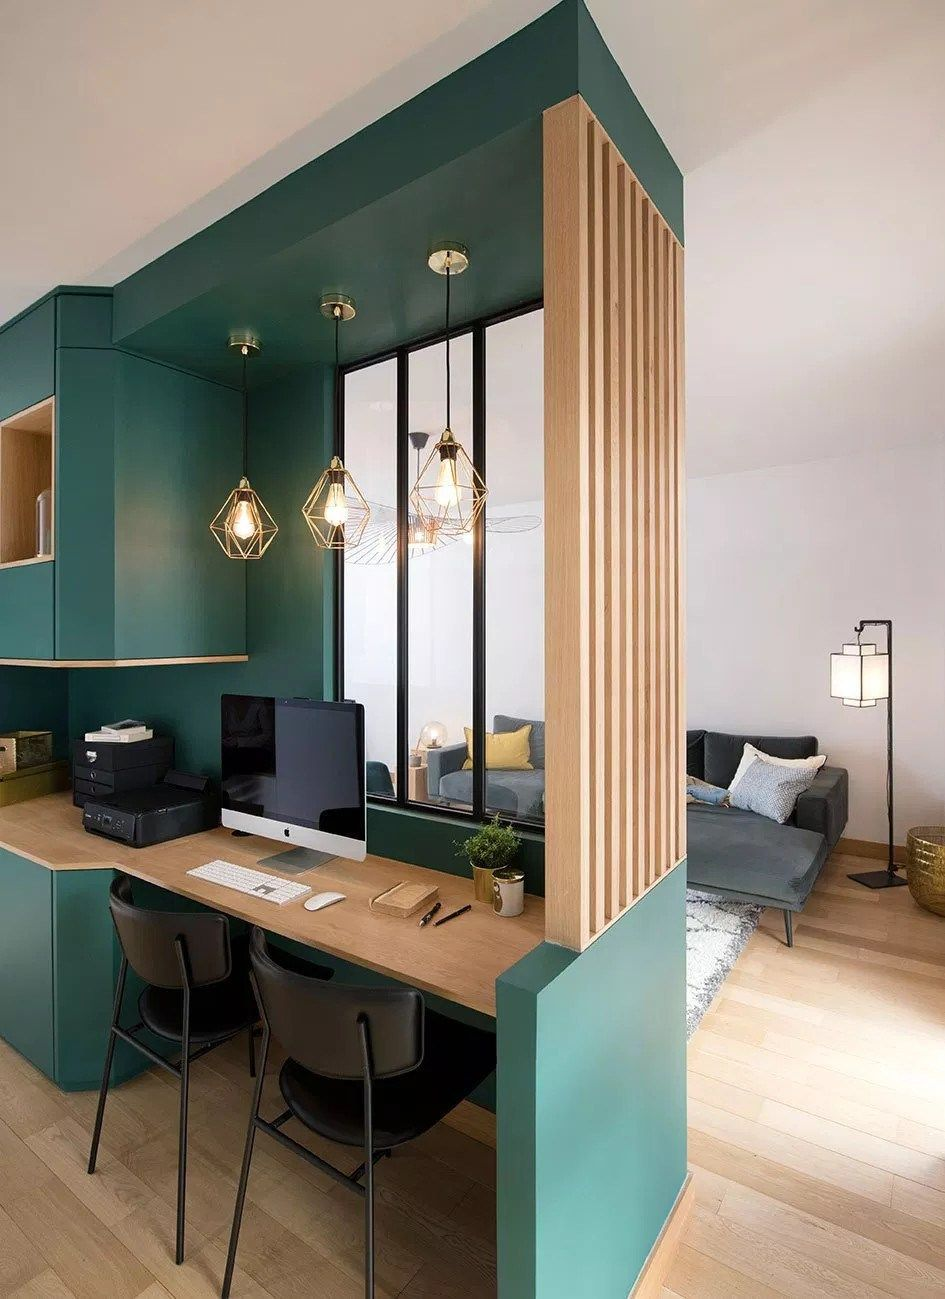 20+ ways to set up a stylish office space in a small space